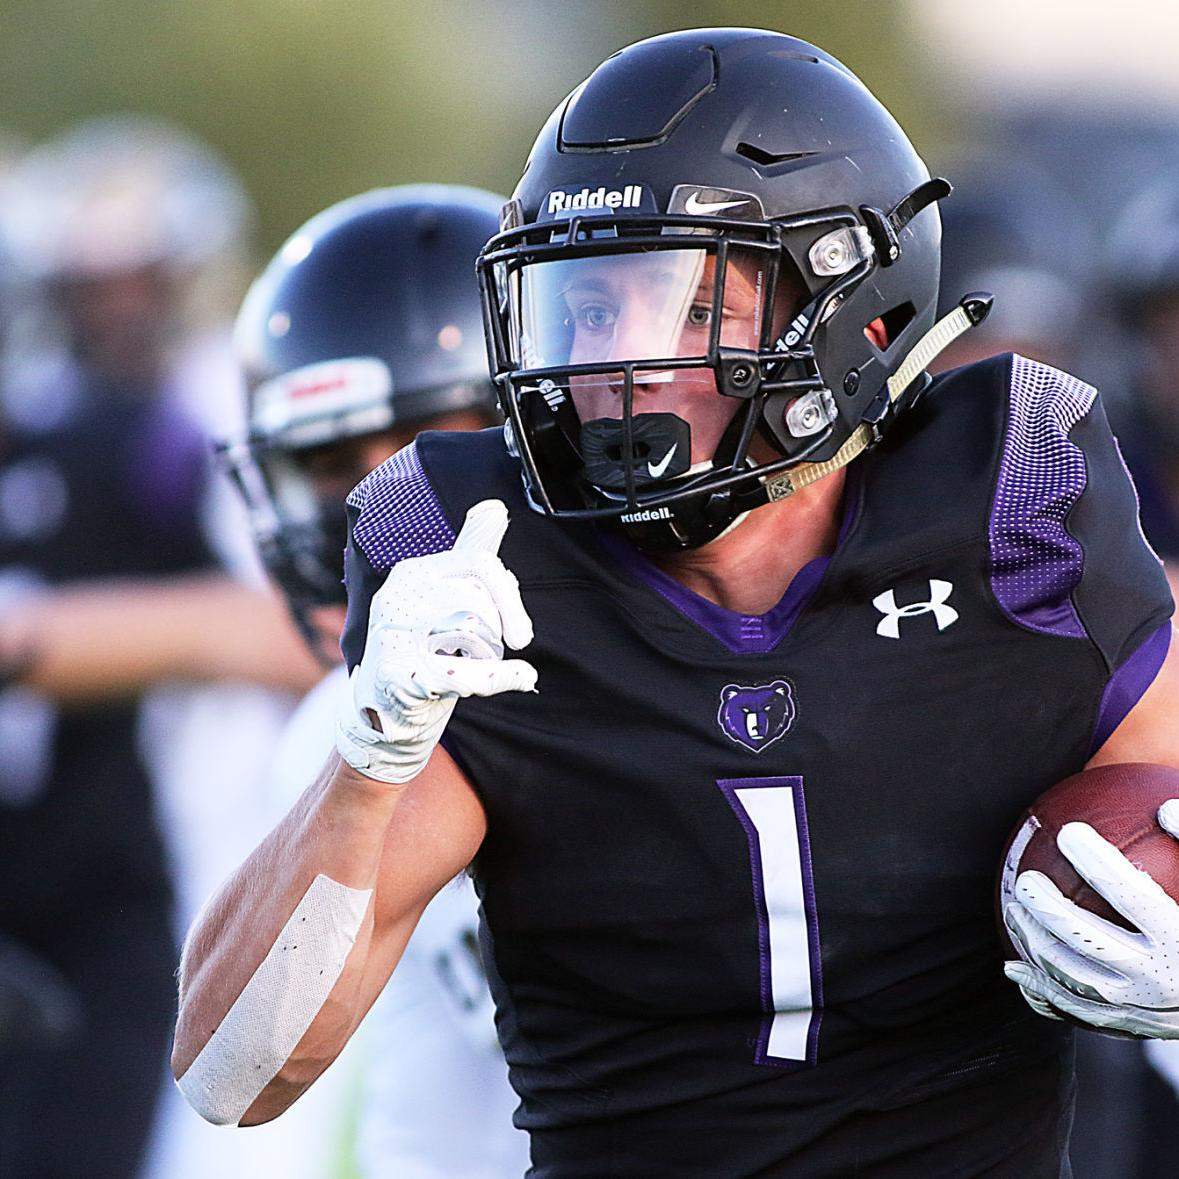 Rocky Mountain's Erickson and Fox combine for 248 yards and 4 TDs in 49-35 win over Capital